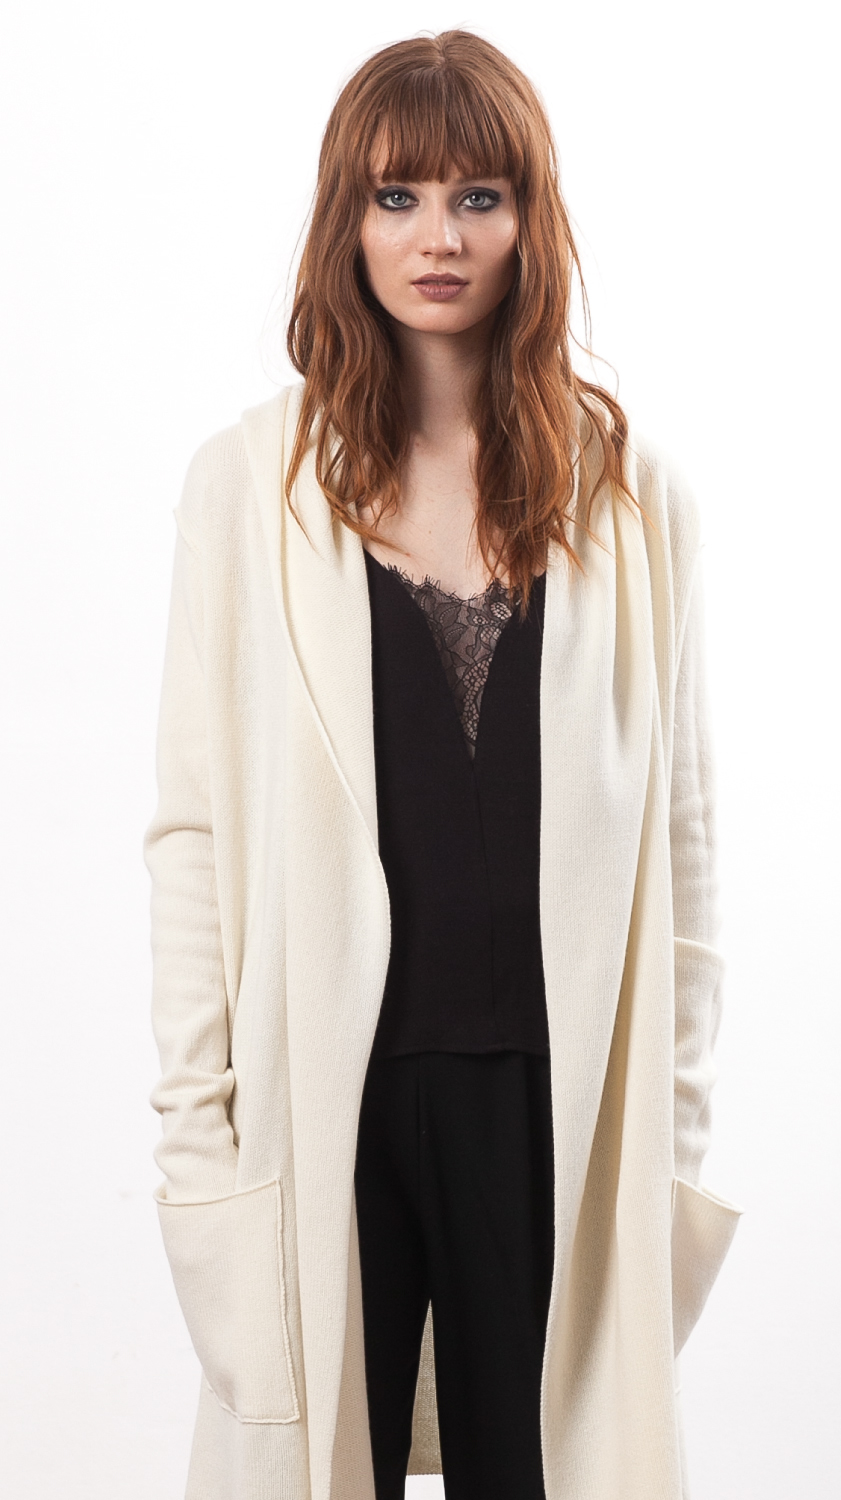 Off-white cashmere cardigan EDITH WHITE - Krista Elsta